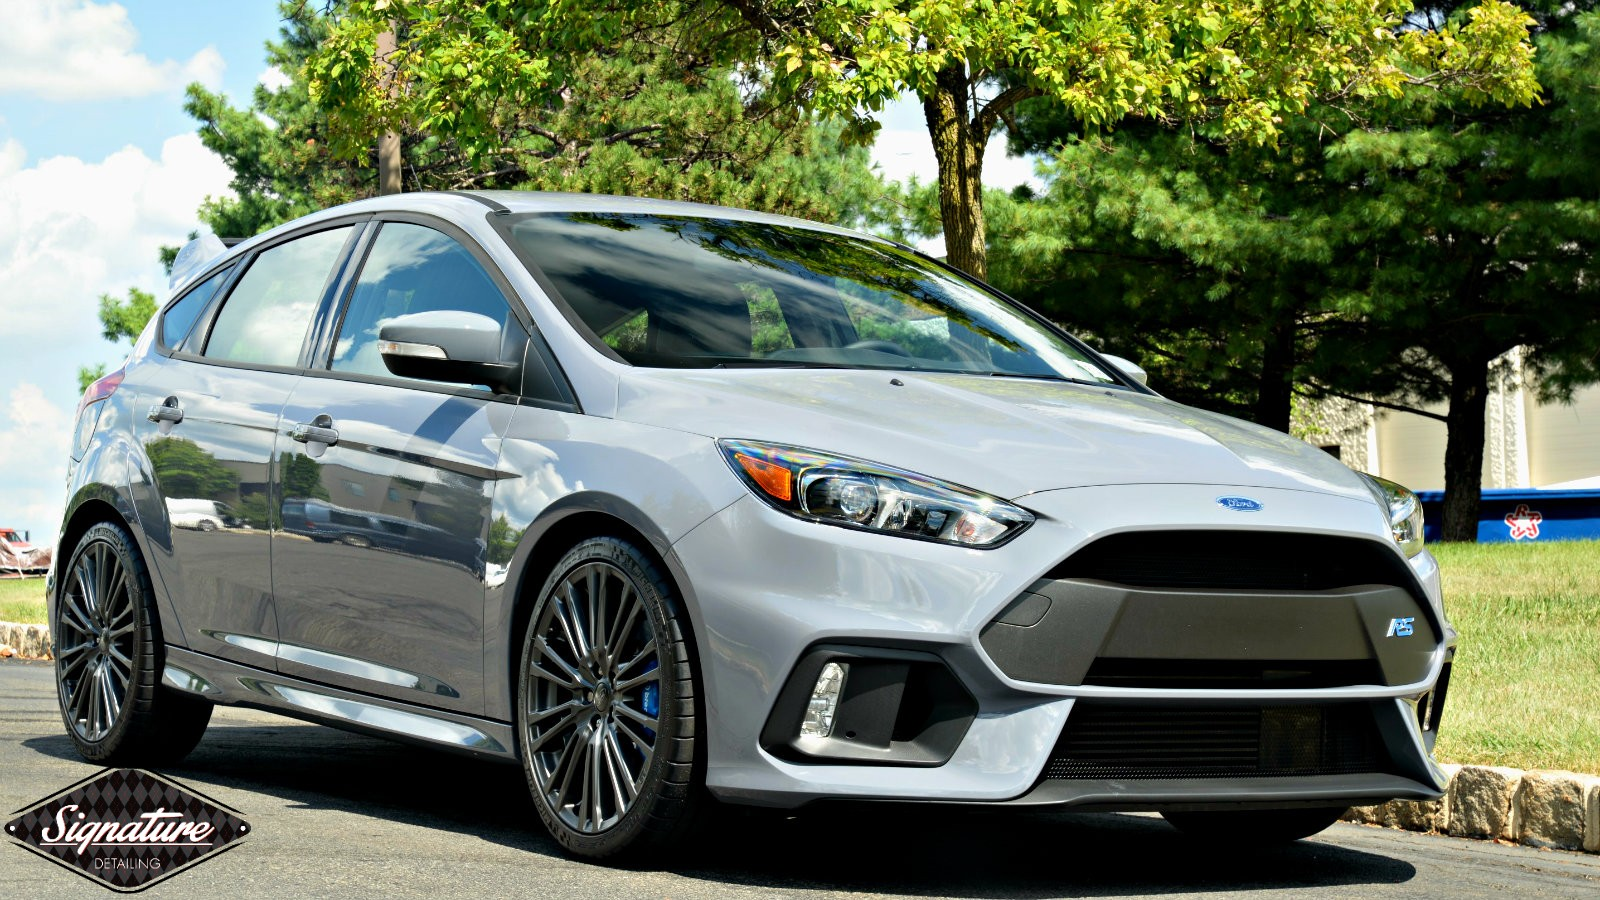 Ful Front end protection for this Ford Focus RS by Greg Gellas of Signature Detailing NJ & NYC